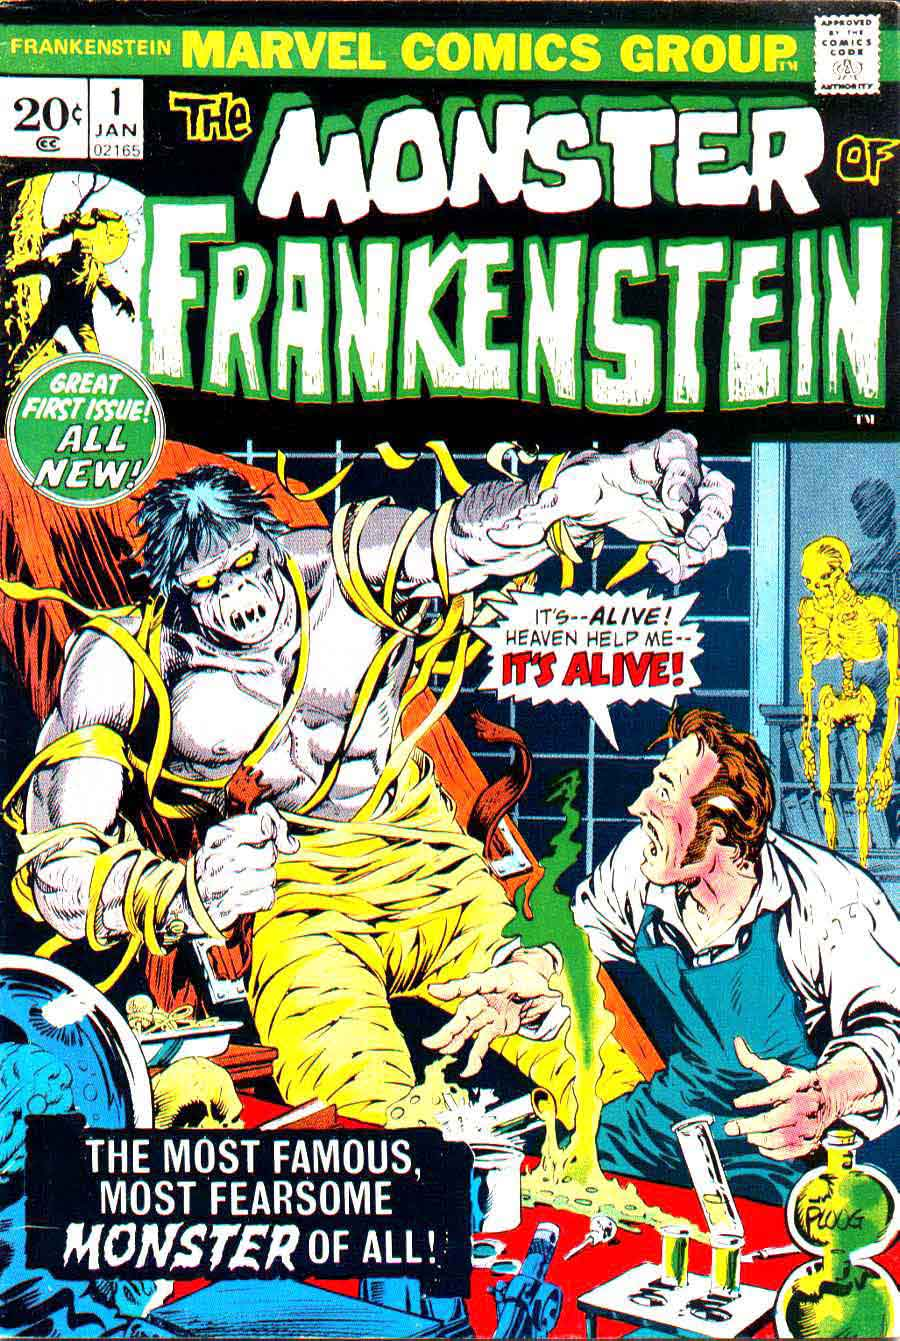 Frankenstein v2 #1 marvel comic book cover art by Mike Ploog